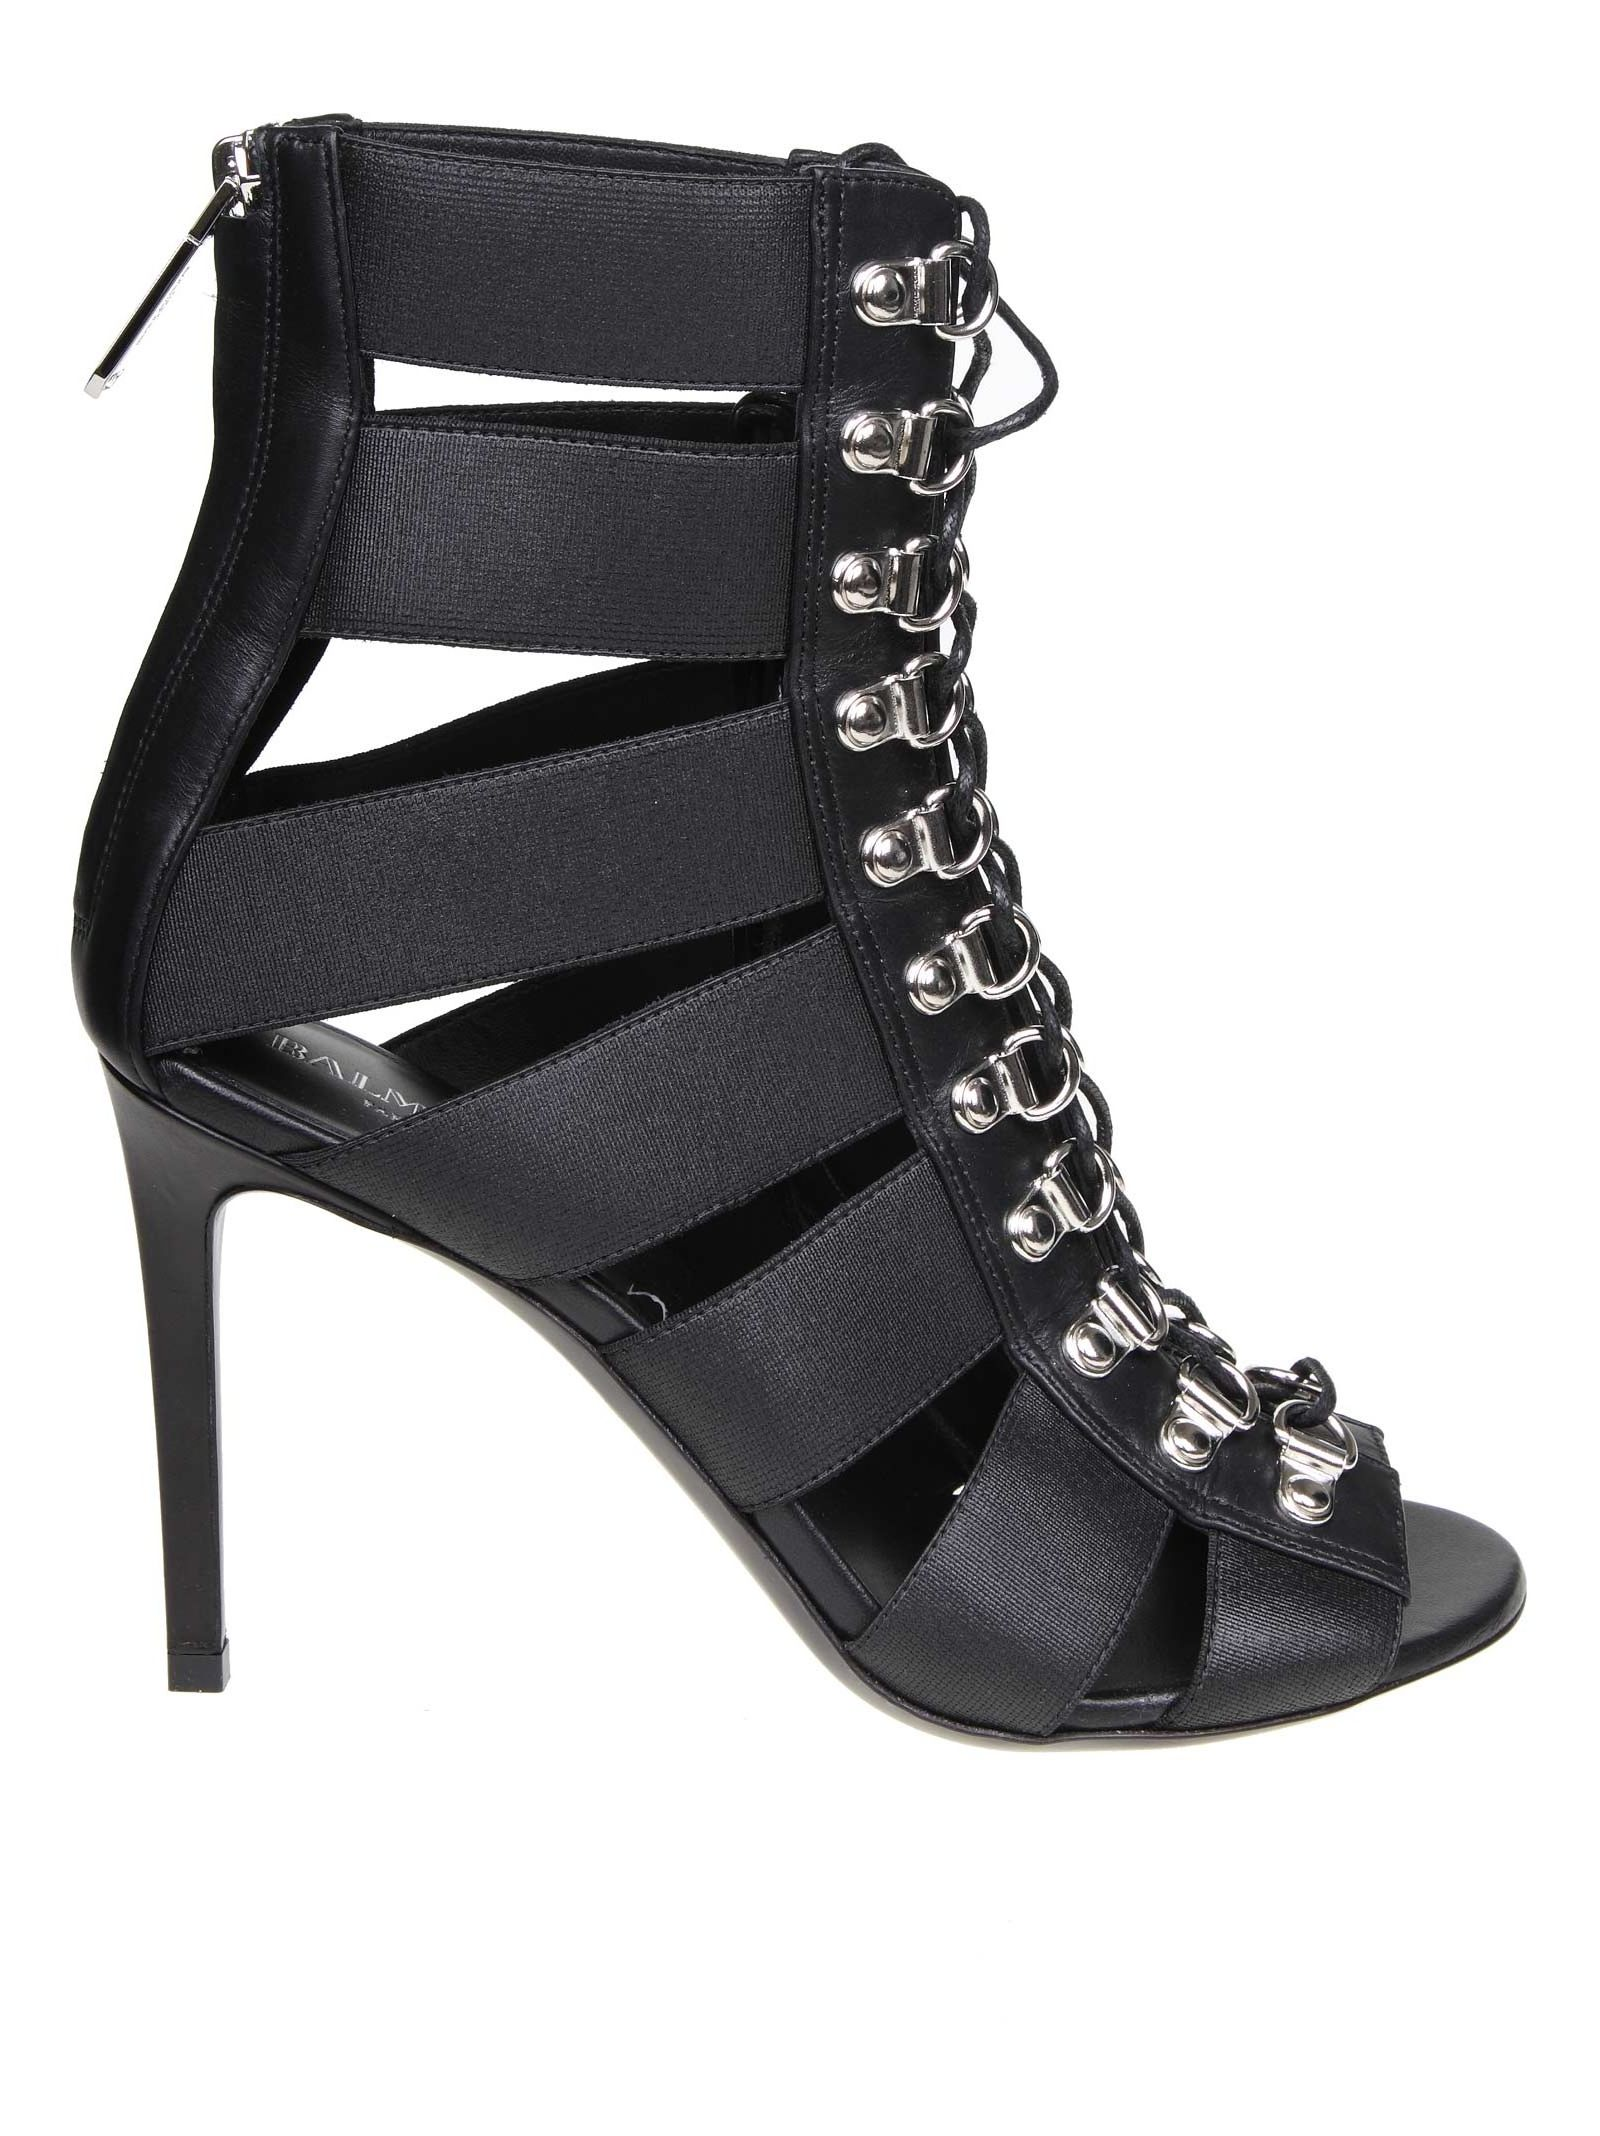 Balmain Sandal Lindsay In Stretch Fabric Color Black